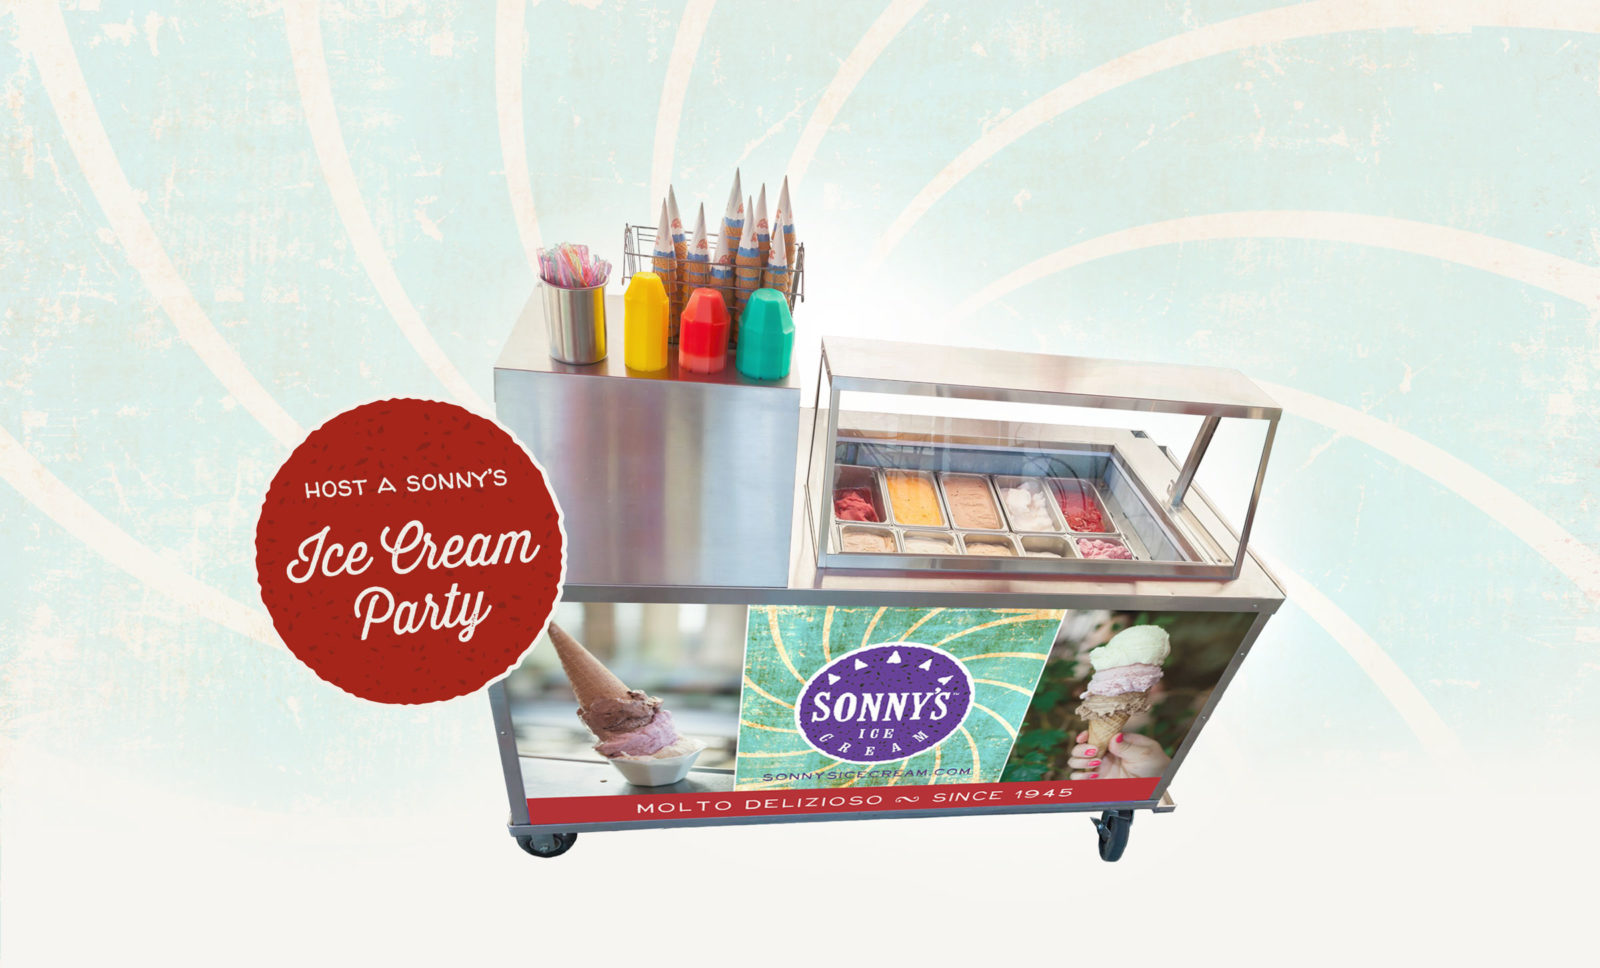 Host a Sonny's Ice Cream Party